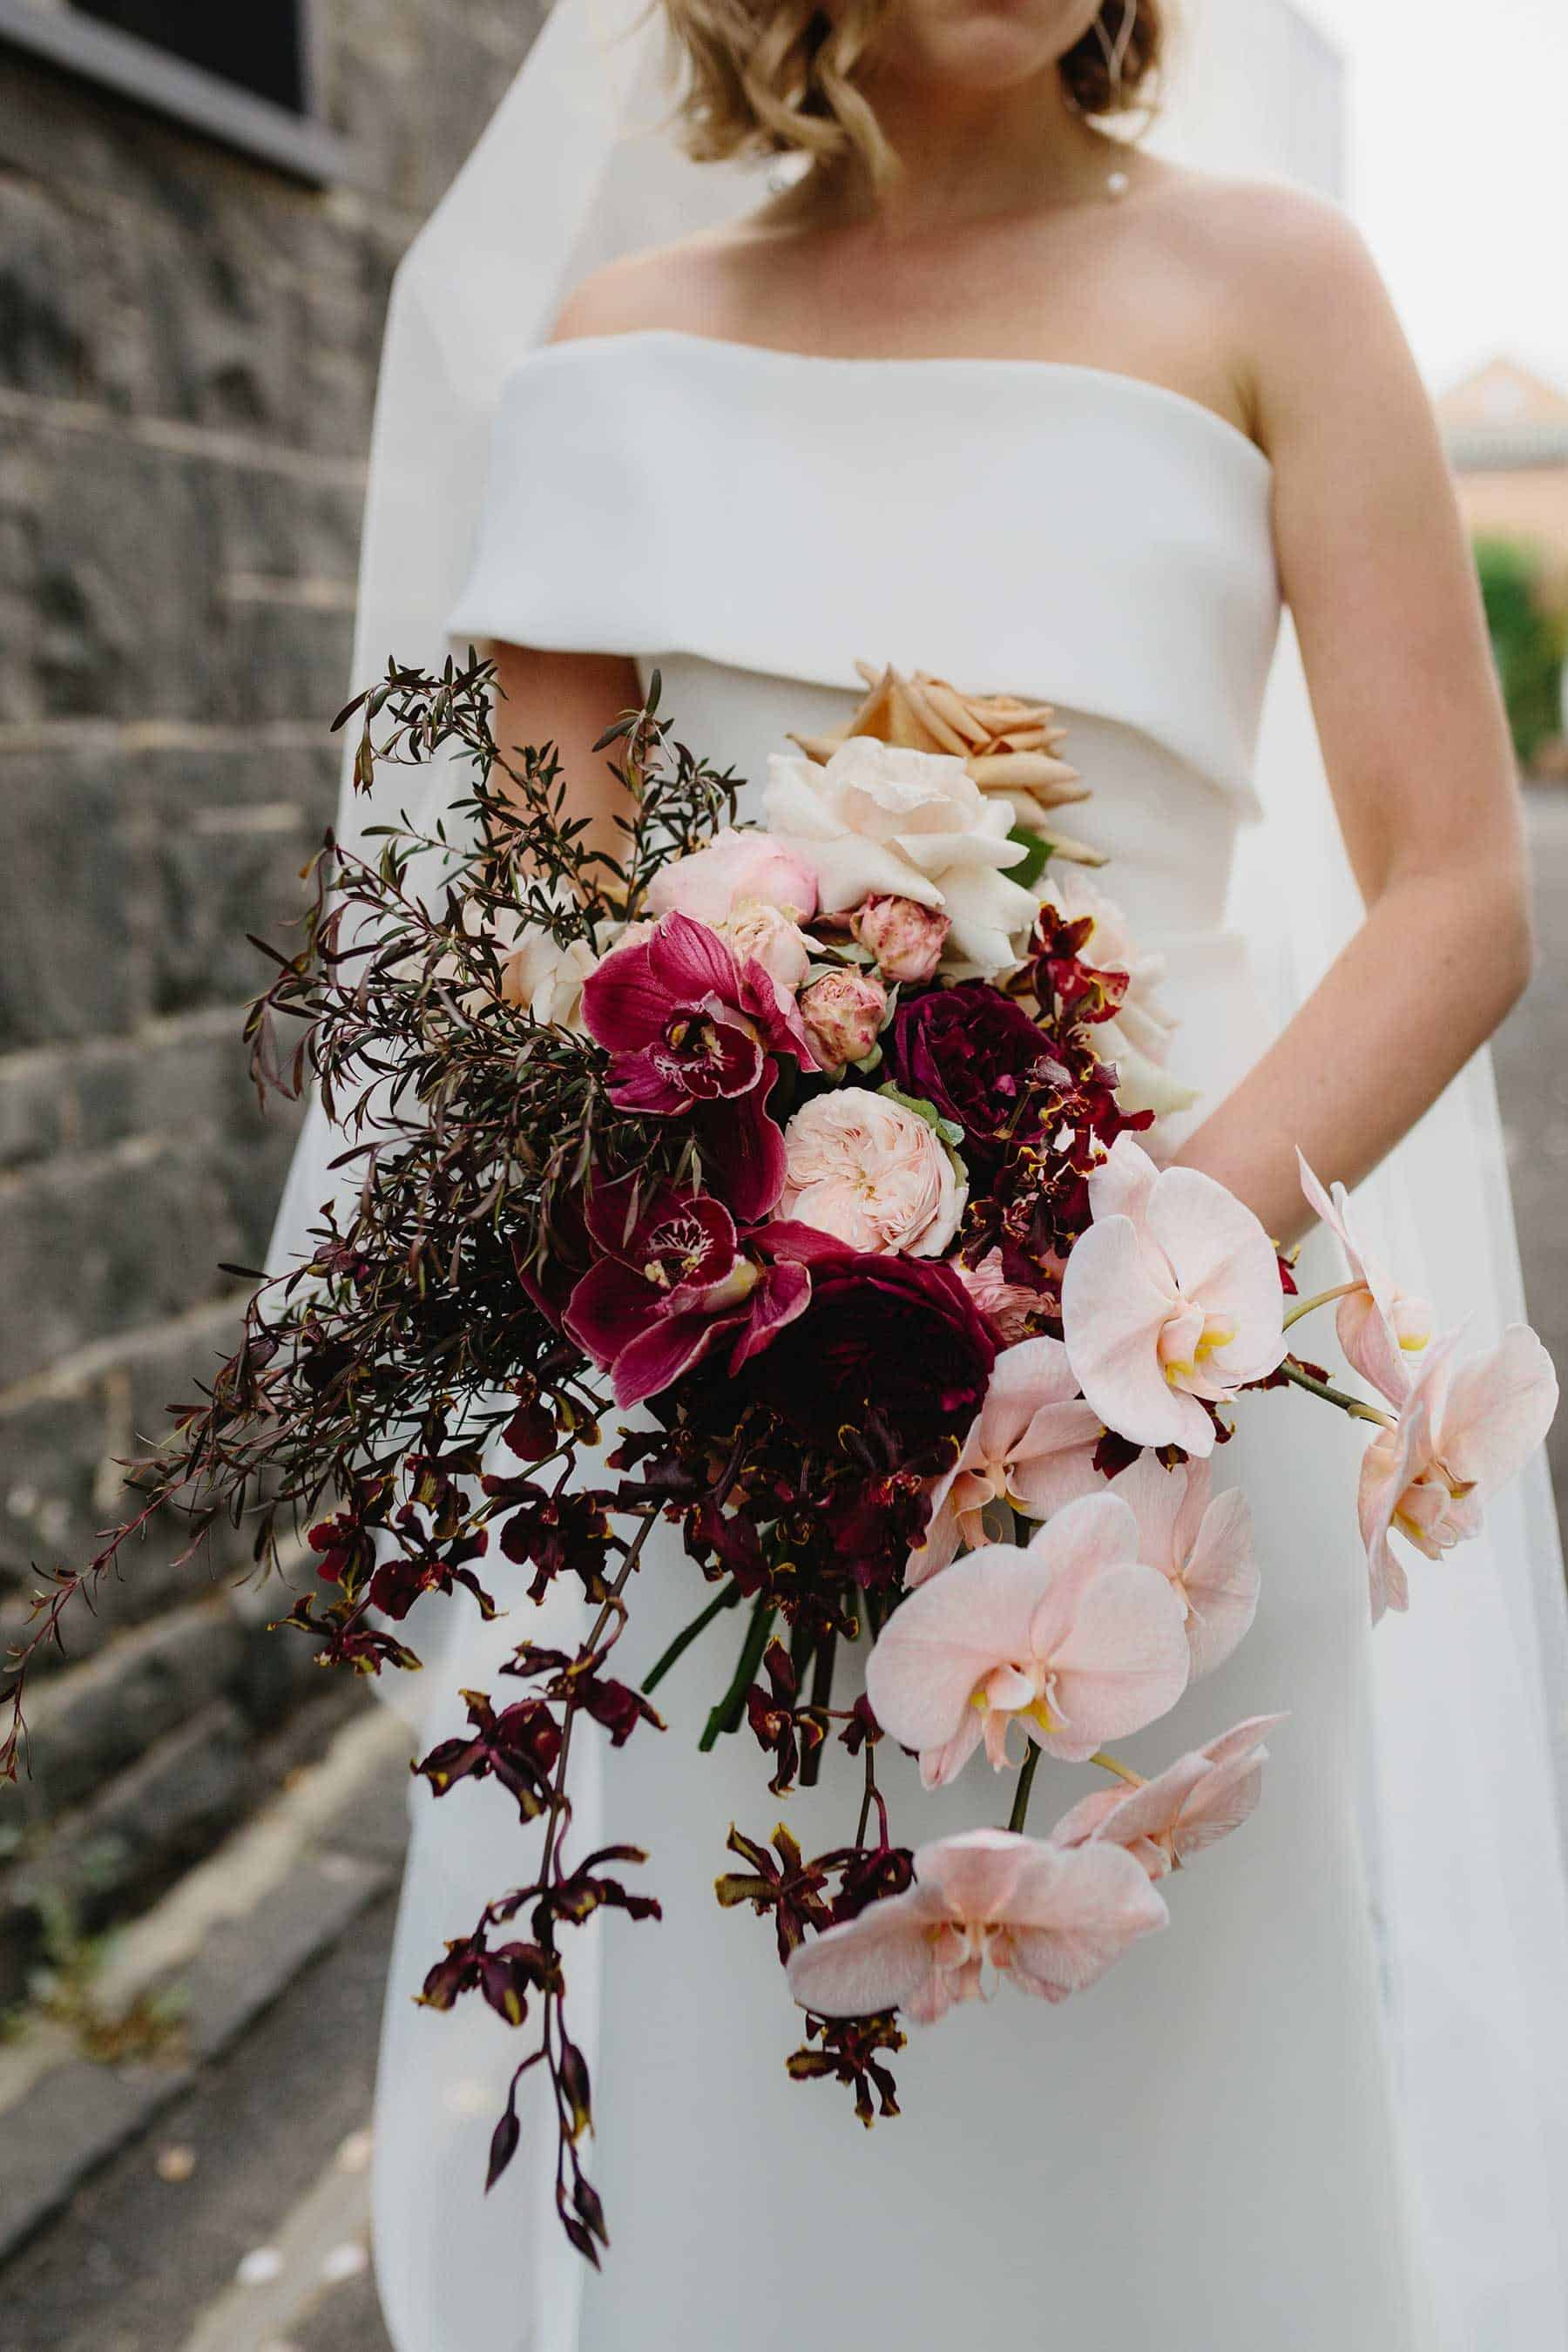 Best bridal bouquets and wedding flowers 2019 - blush and burgundy bouquet